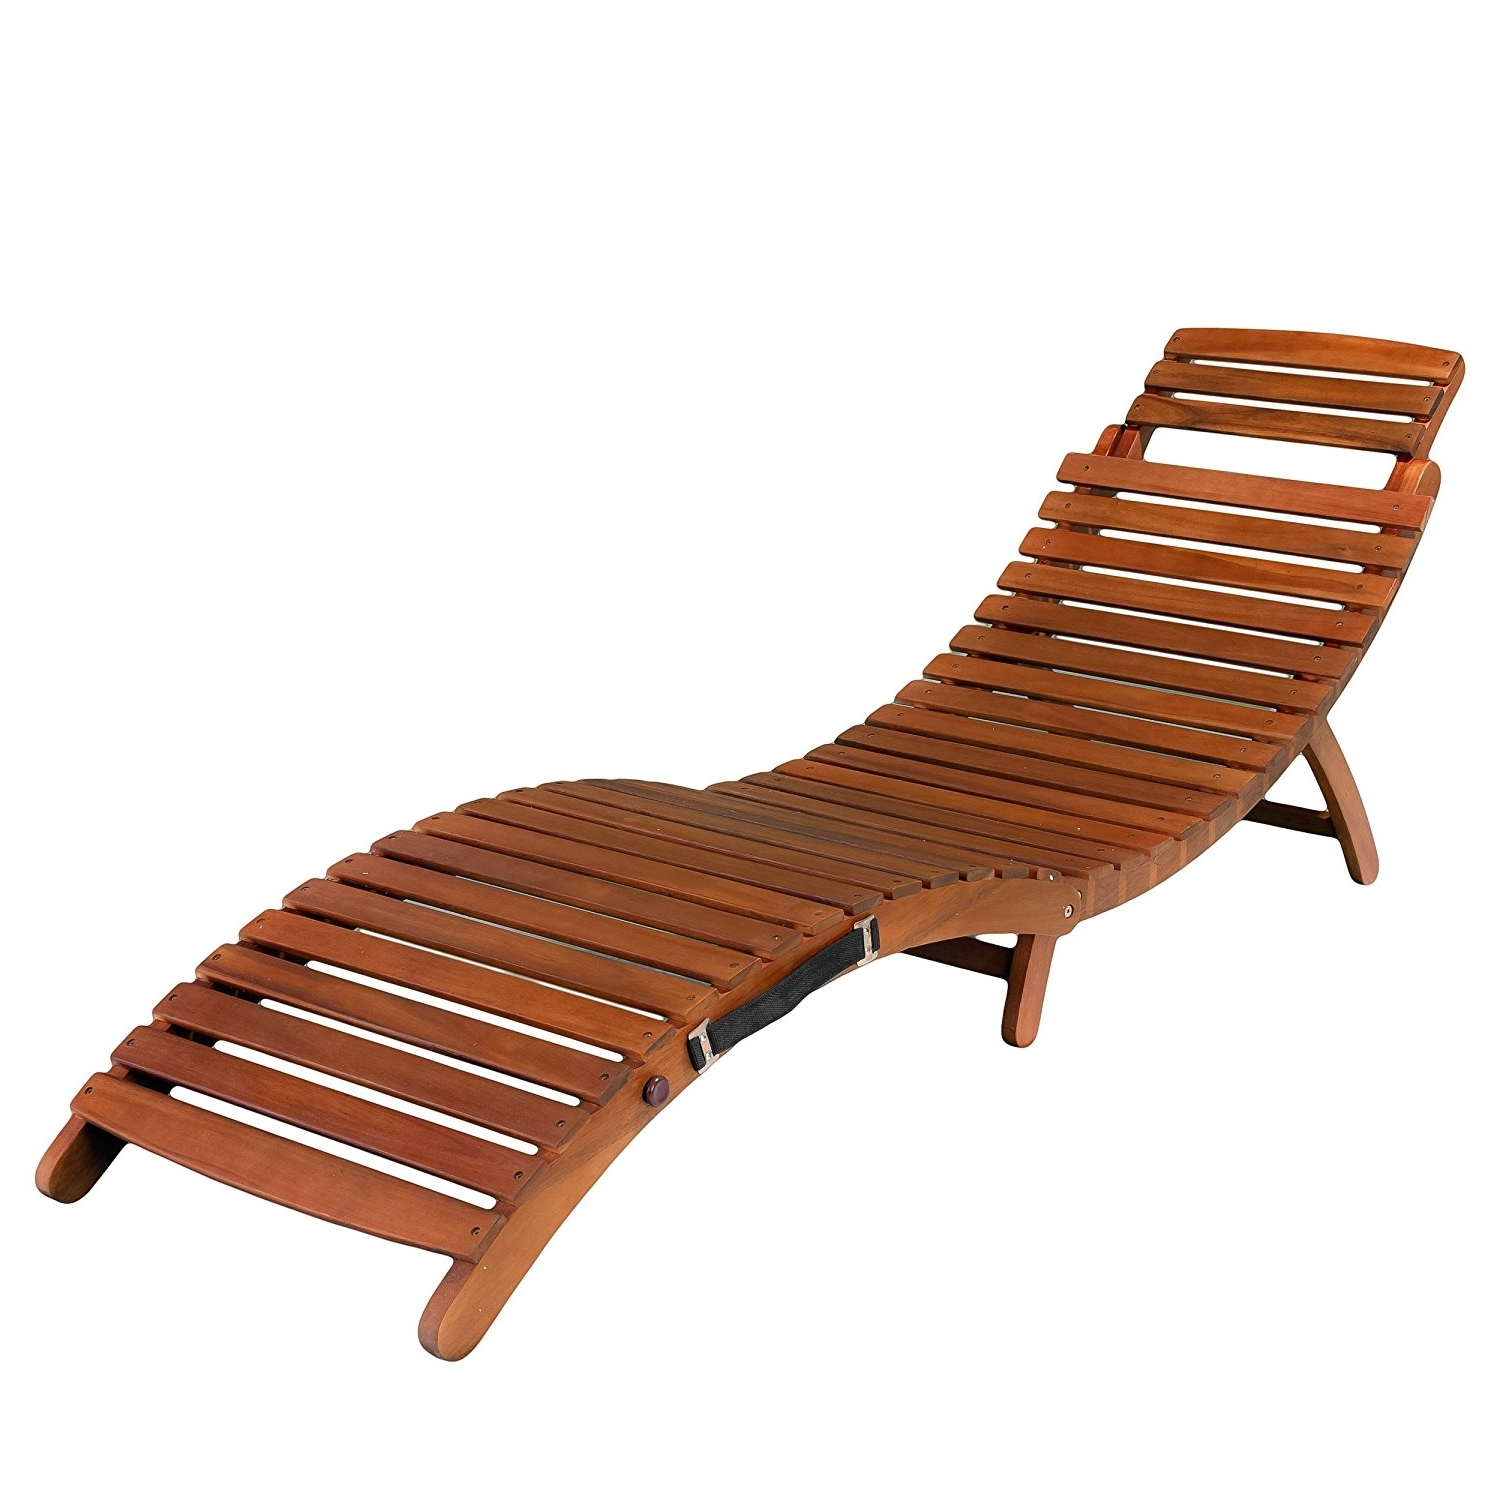 Amazon: Best Selling Del Rio Wood Outdoor Chaise Lounge Intended For Widely Used Cheap Outdoor Chaise Lounge Chairs (View 9 of 15)